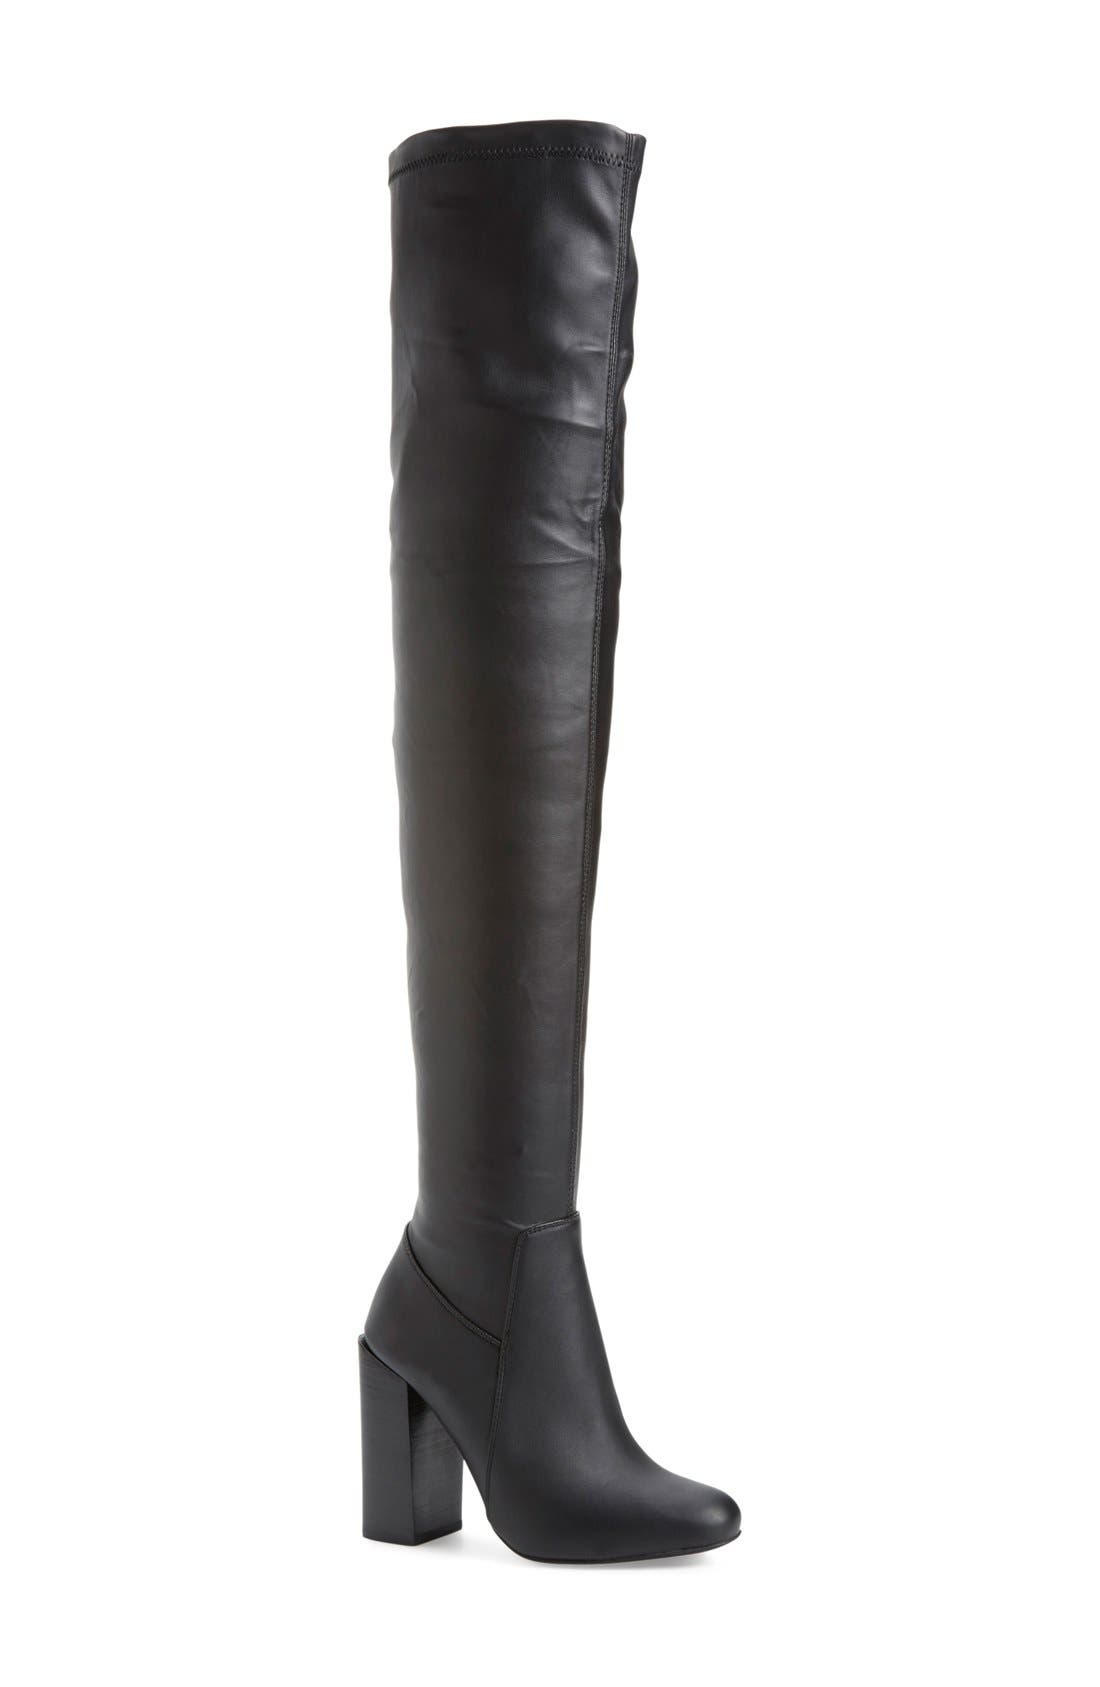 Main Image - JeffreyCampbell 'Perouze' Over the Knee Boot (Women)